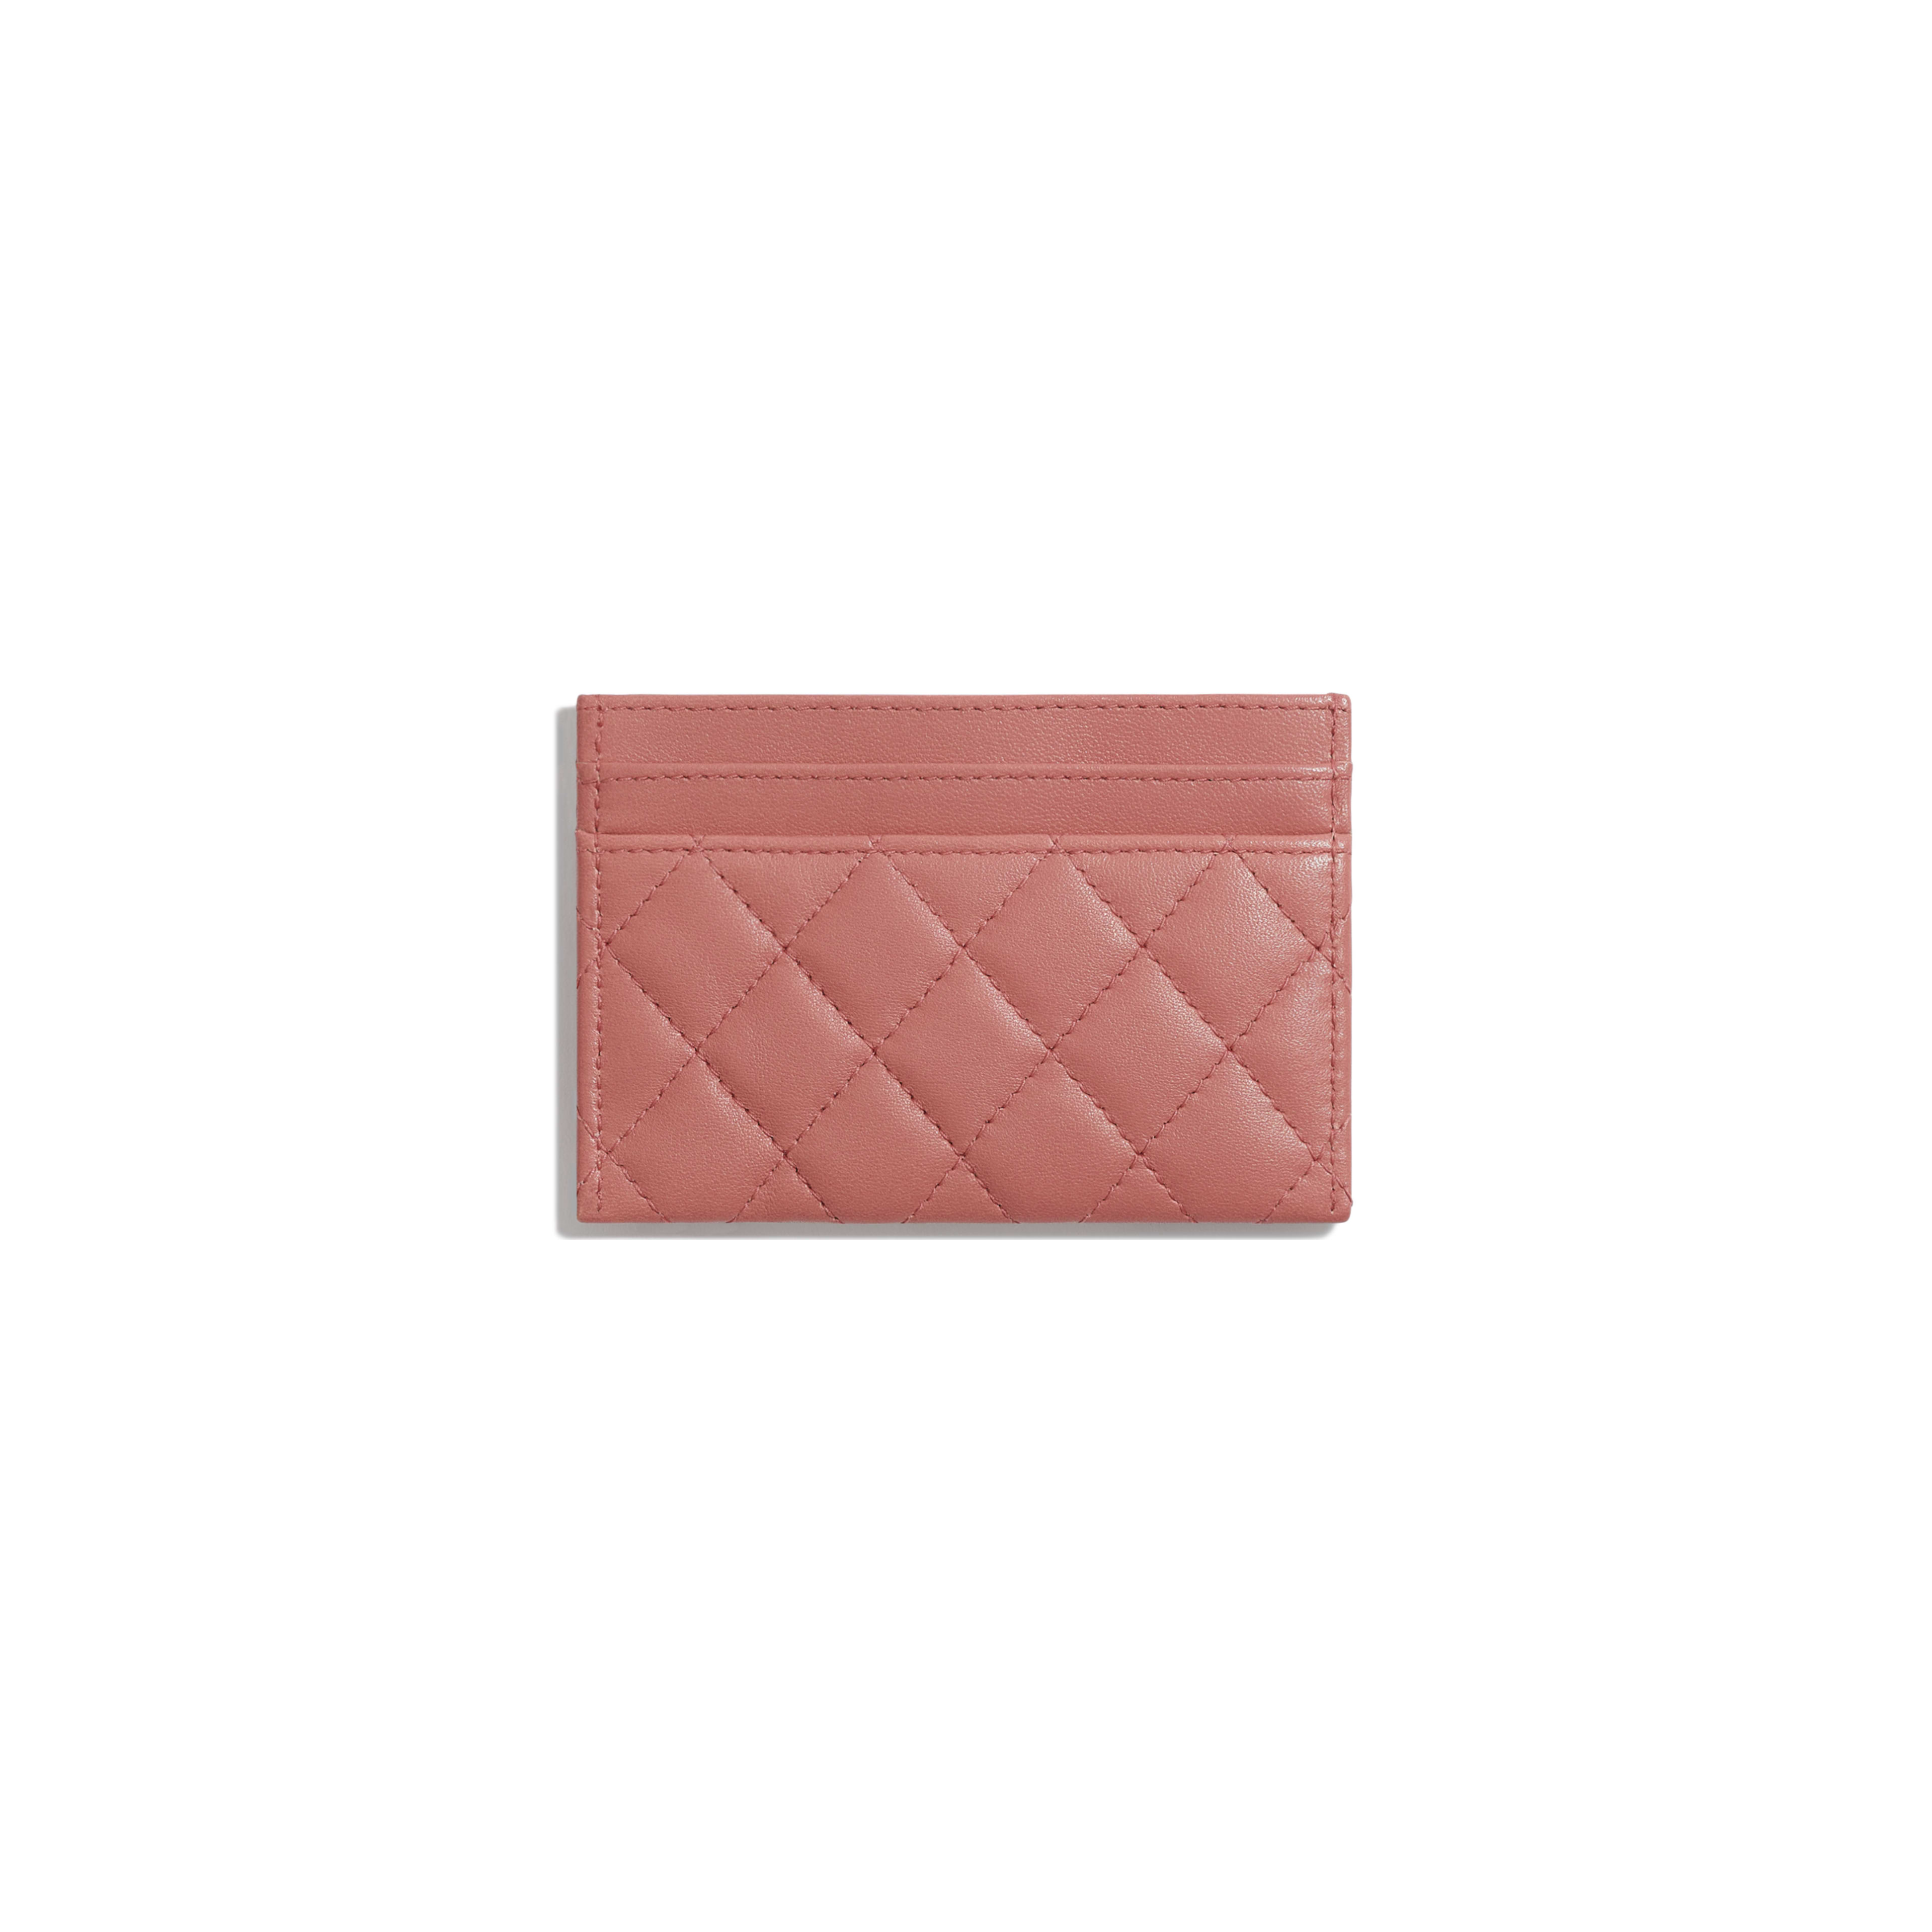 BOY CHANEL Card Holder - Pink - Lambskin - Alternative view - see full sized version